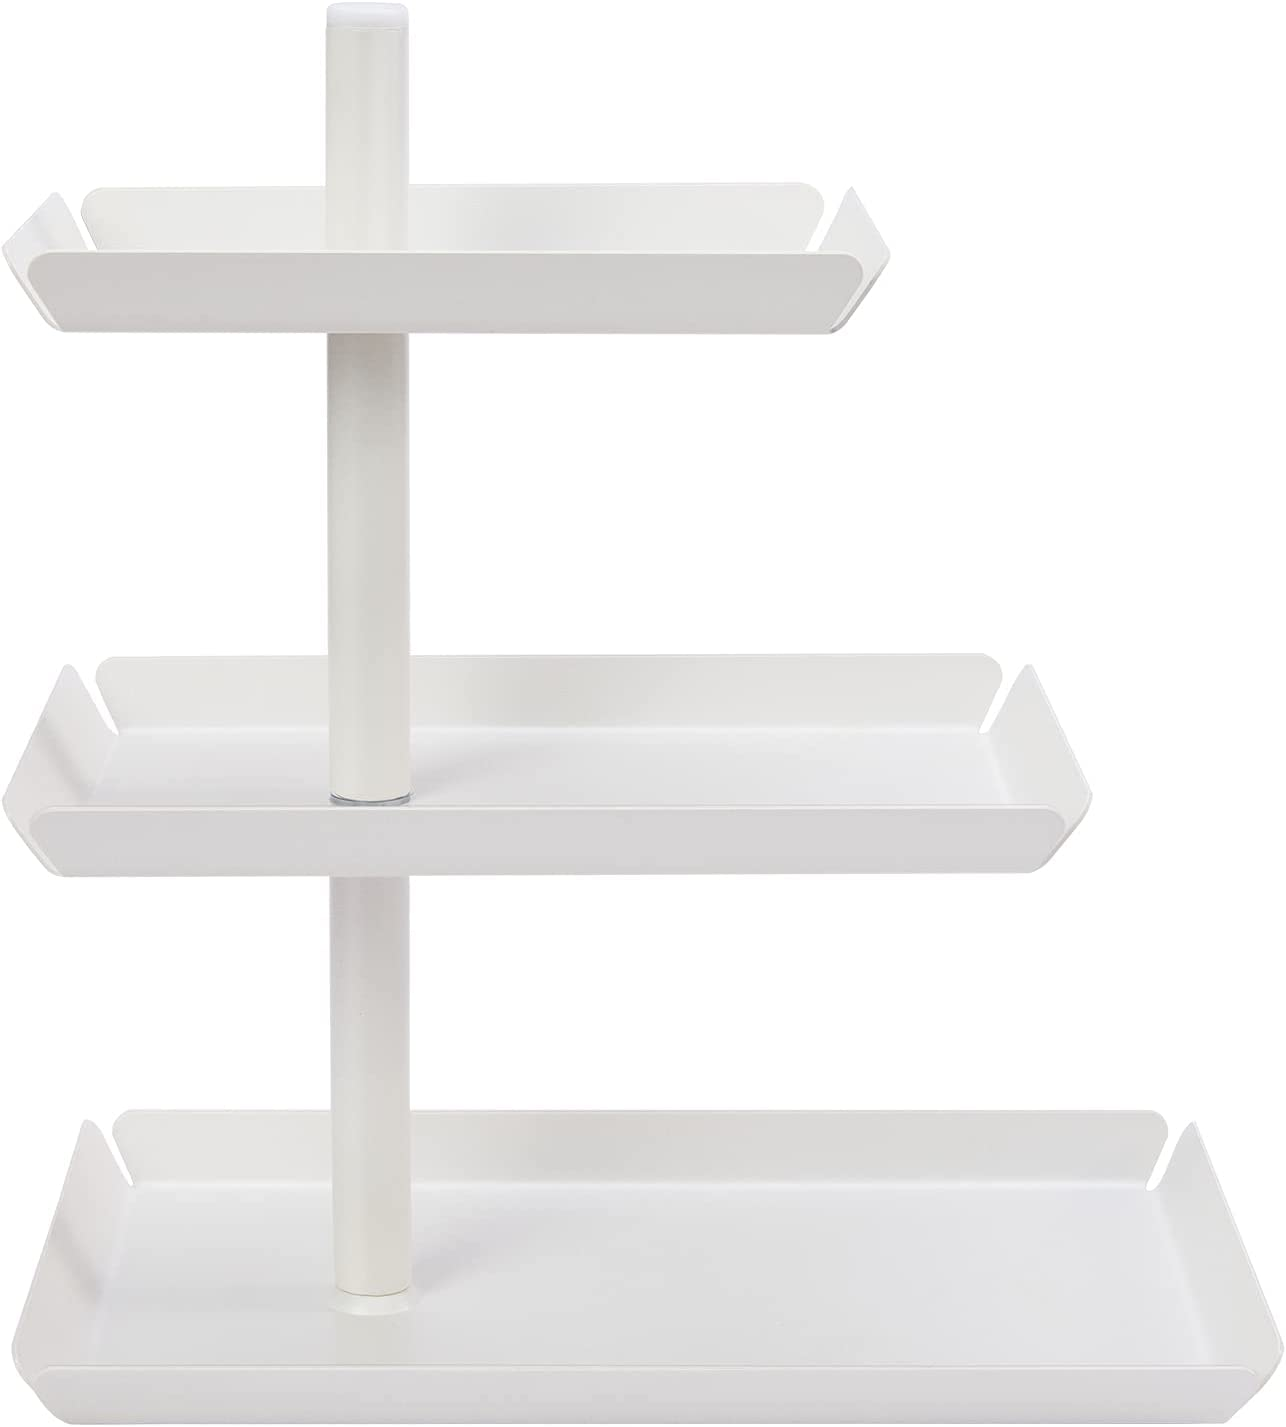 YOFRI 3-Tier Cupcake Stand, Metal Tiered Serving Tray, Cake Display Tower Holder, Food Dessert Fruit Snack Display Plate for Tea Party Decorations, Catering Supplies, Wedding, Birthday, Graduation